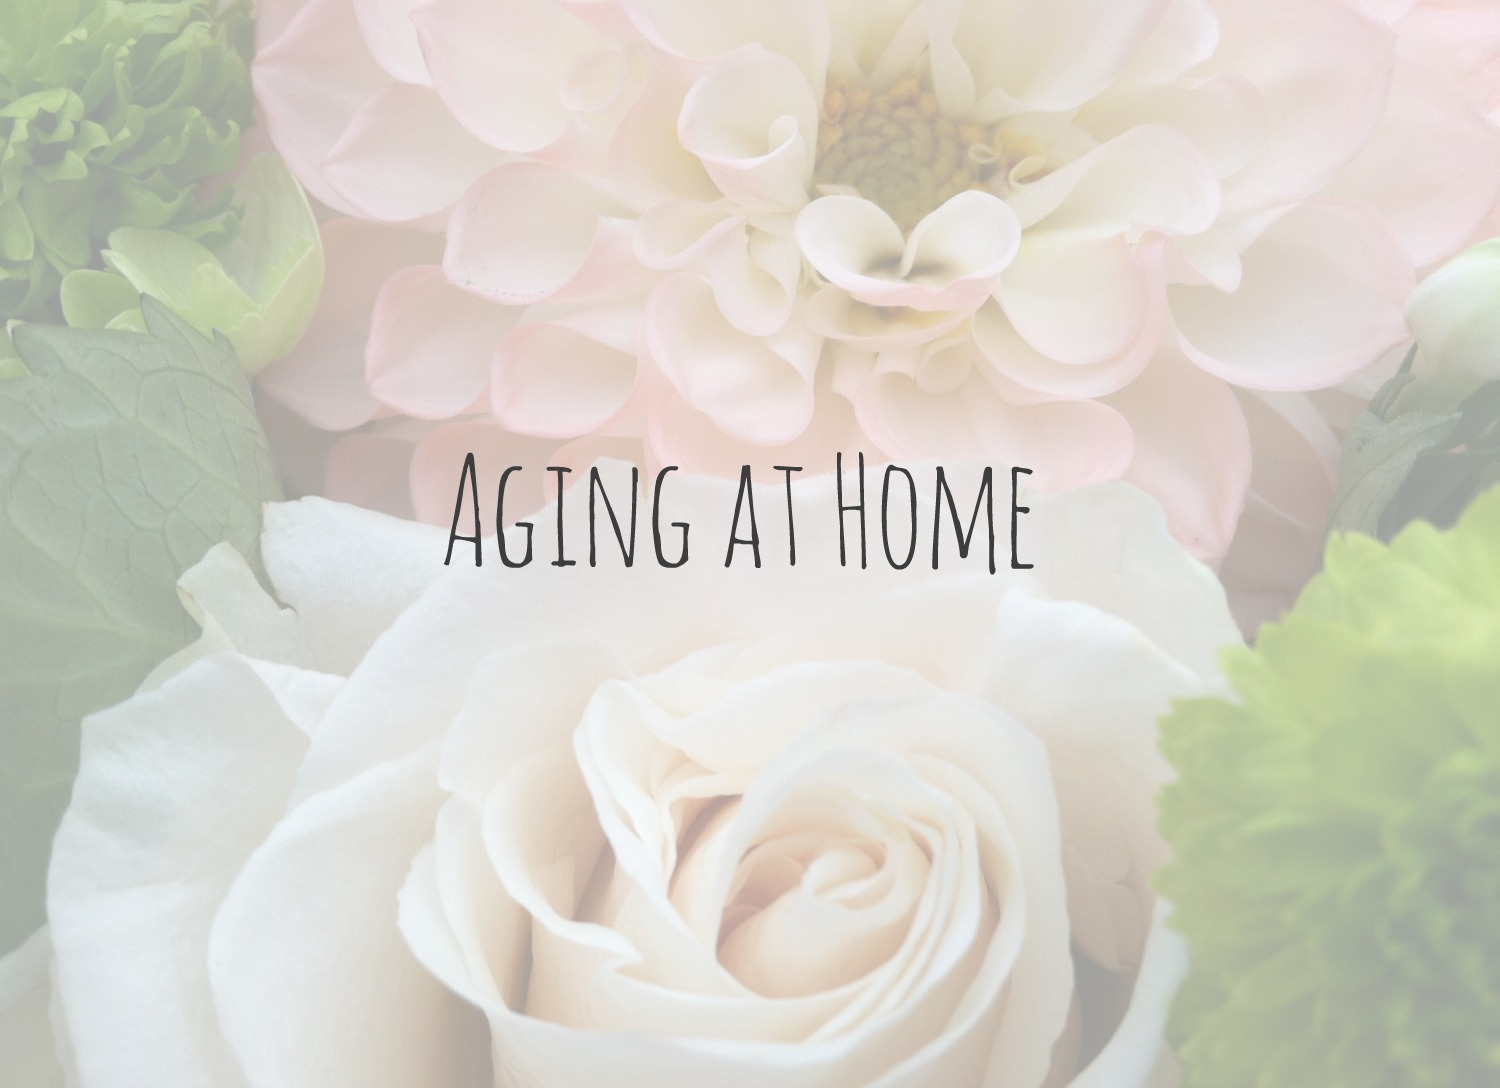 Aging at Home 2.jpg